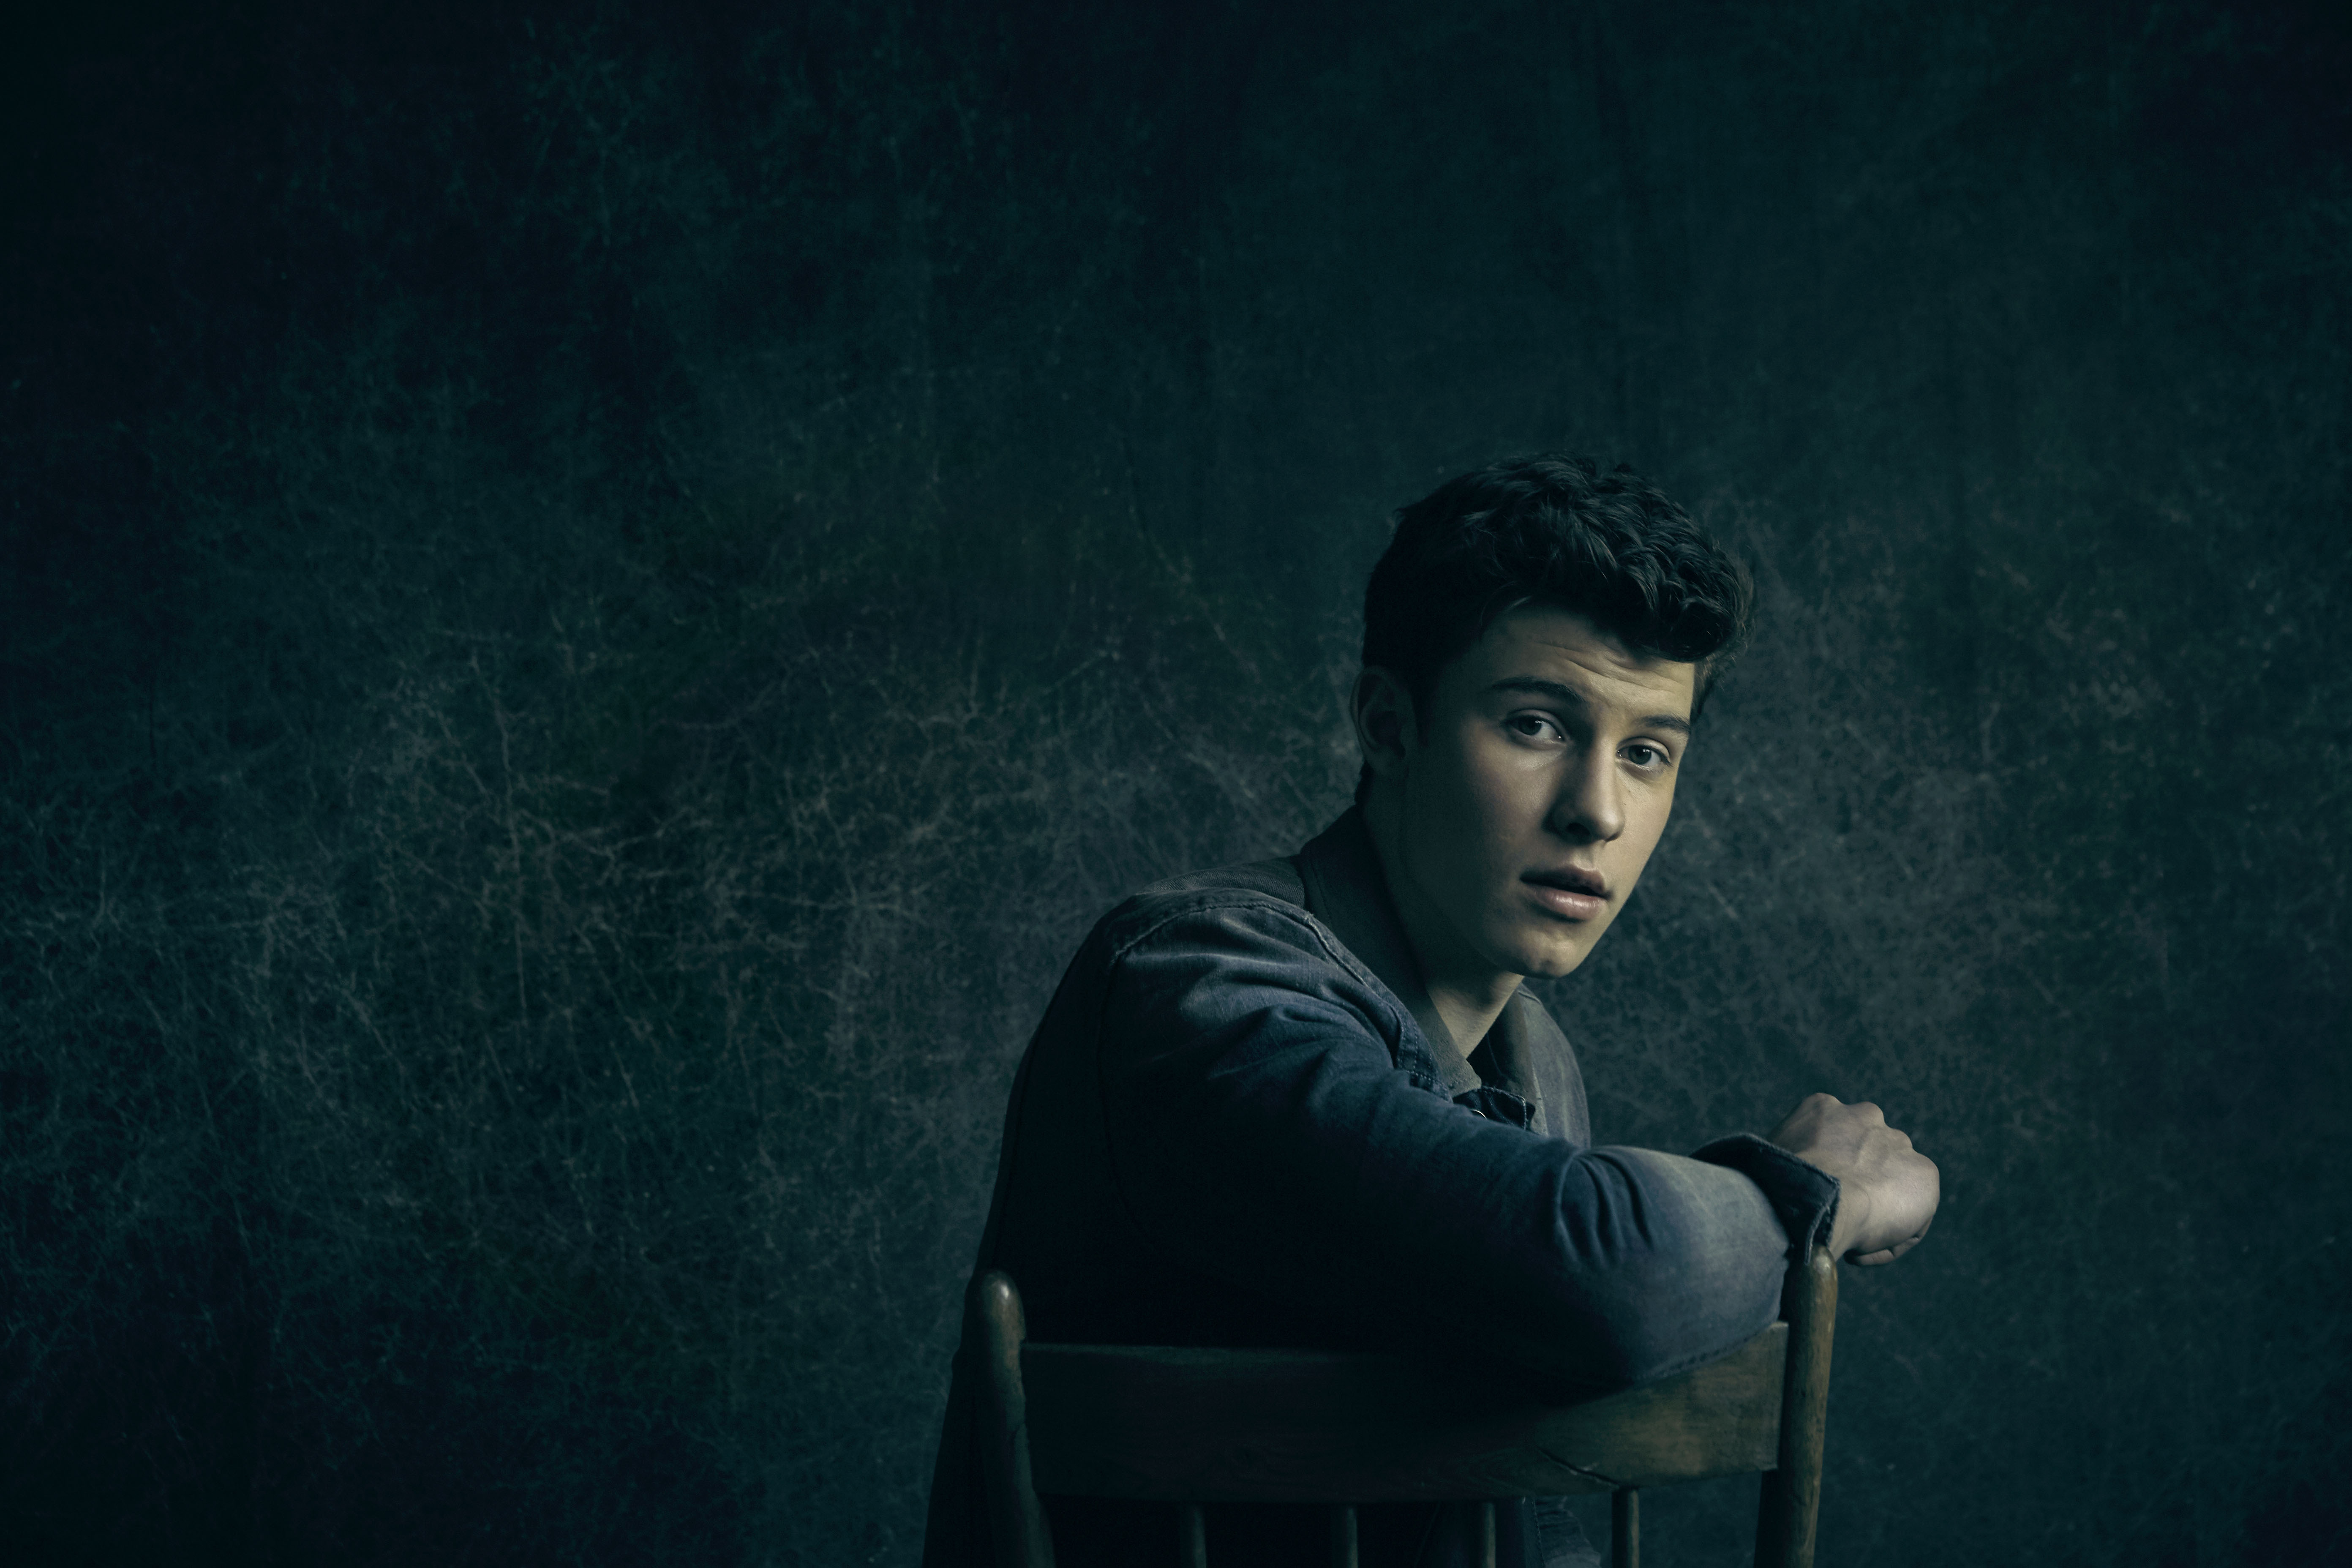 Shawn Mendes to play first Manchester Arena show in New Tour